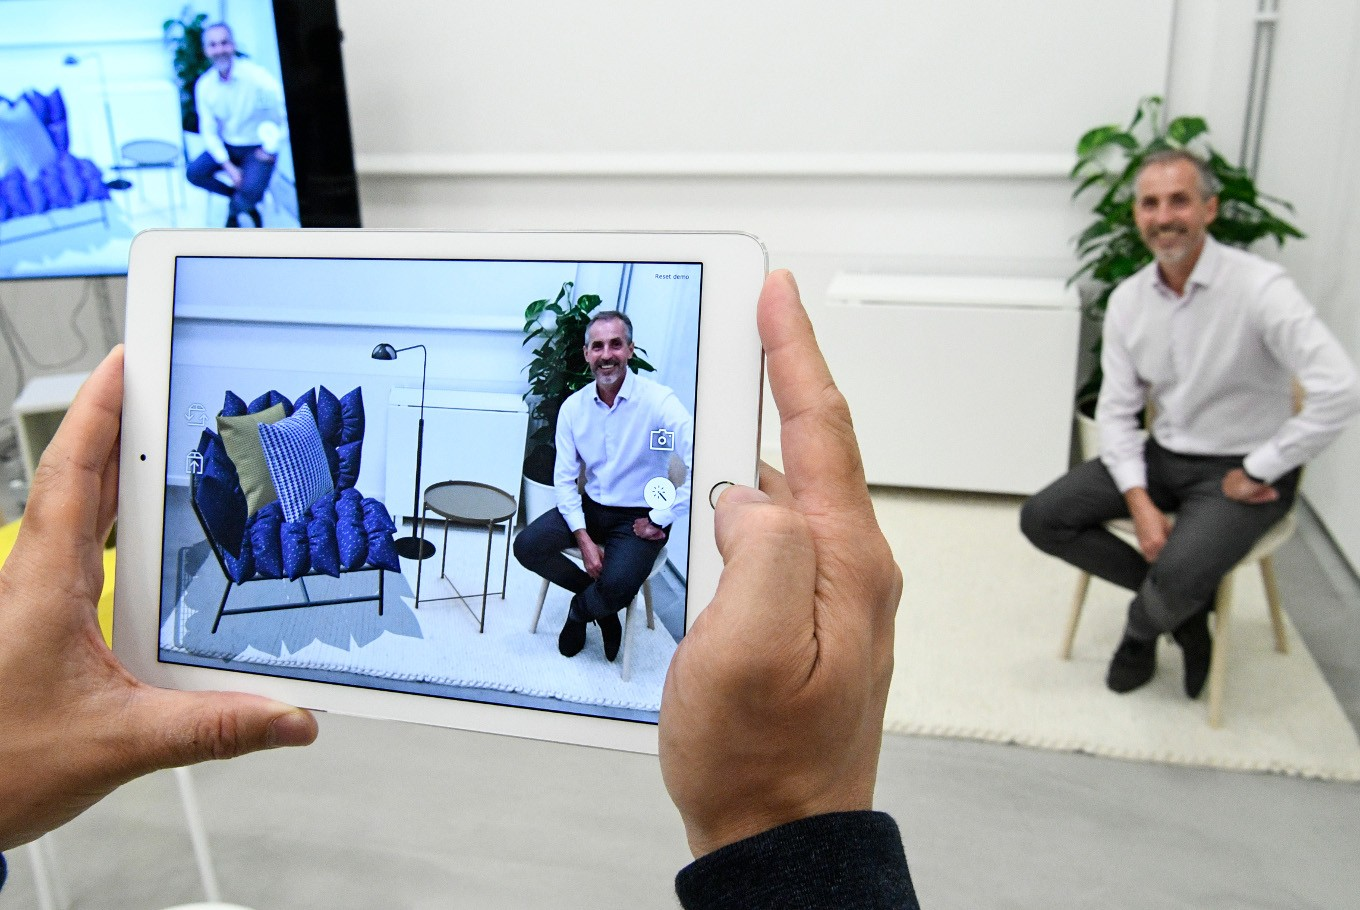 Ikea Le Collaborate For Augmented Reality